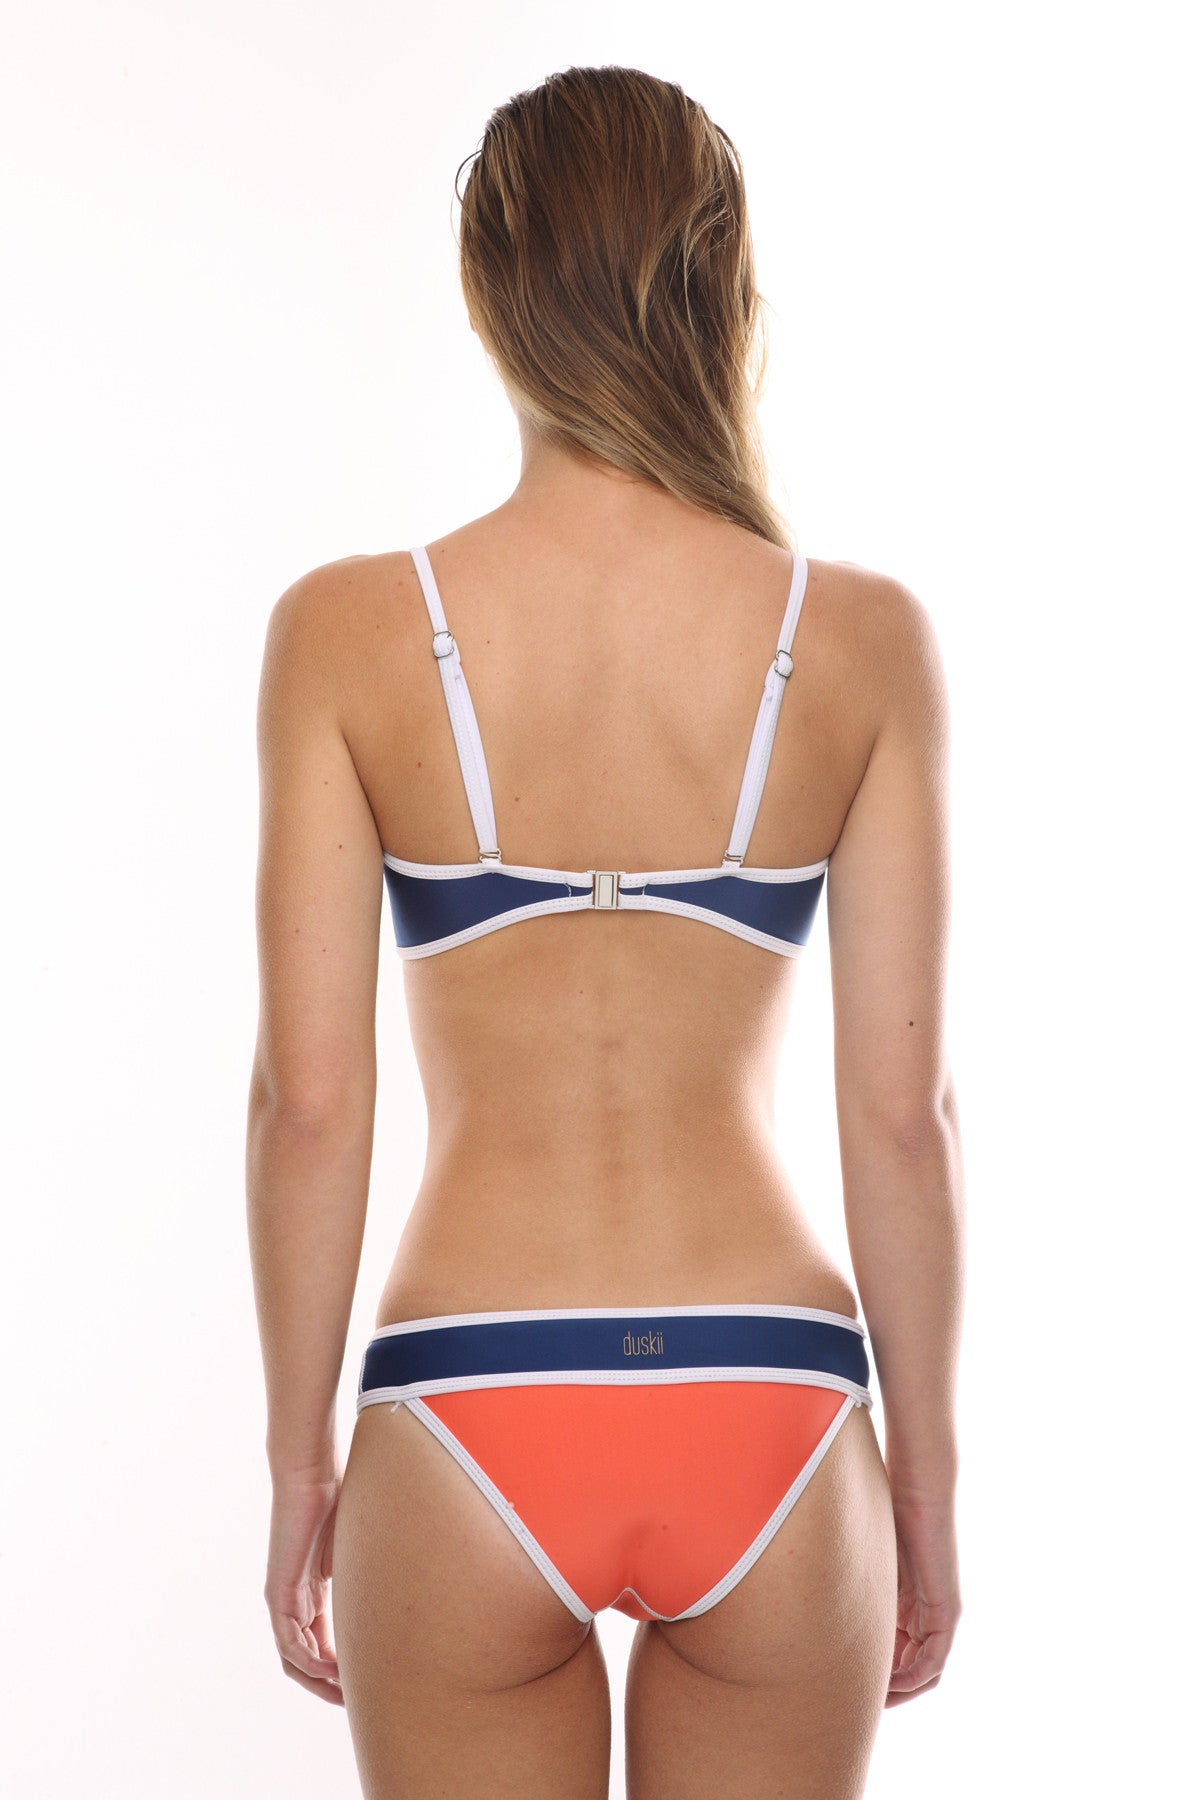 Duskii Splash Retro Bikini Top and Pants